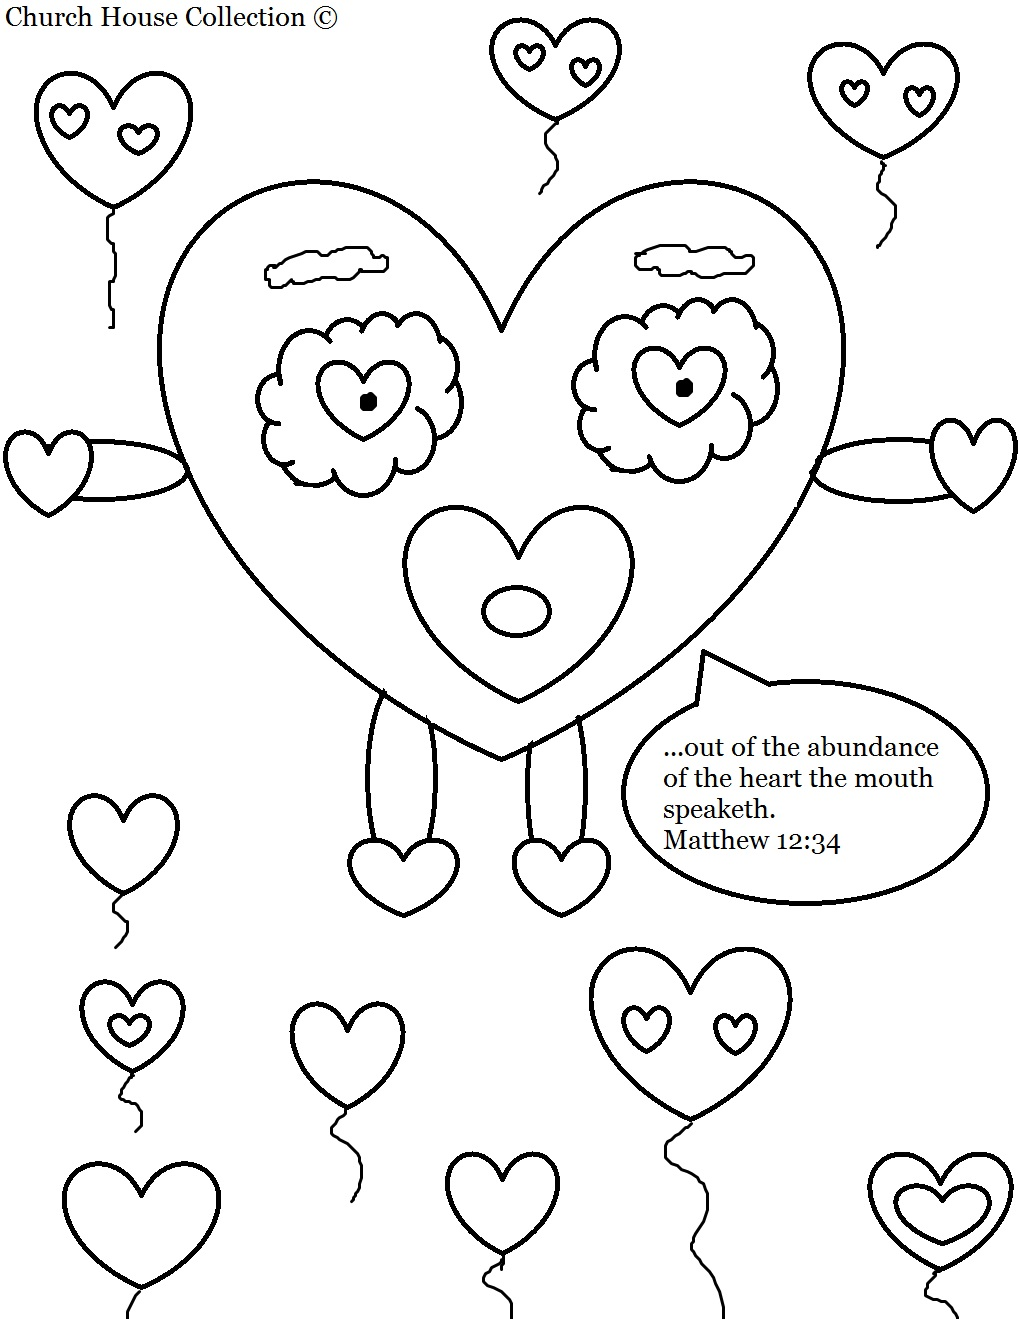 church house collection blog: valentine's day heart coloring page